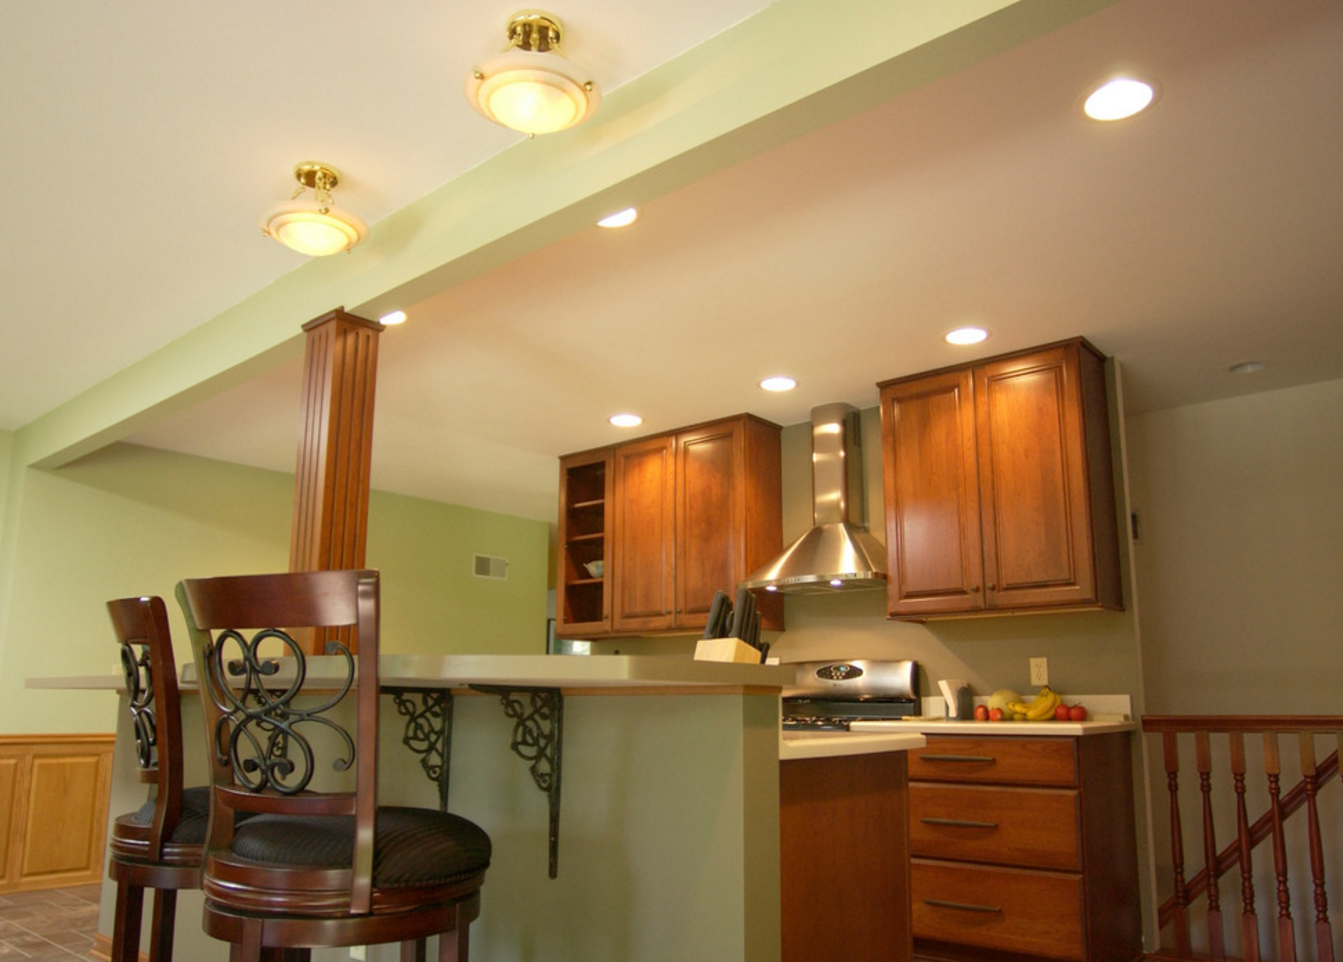 kitchen-remodel-madison-verona-middletonn-monona-wisconsin-26.png